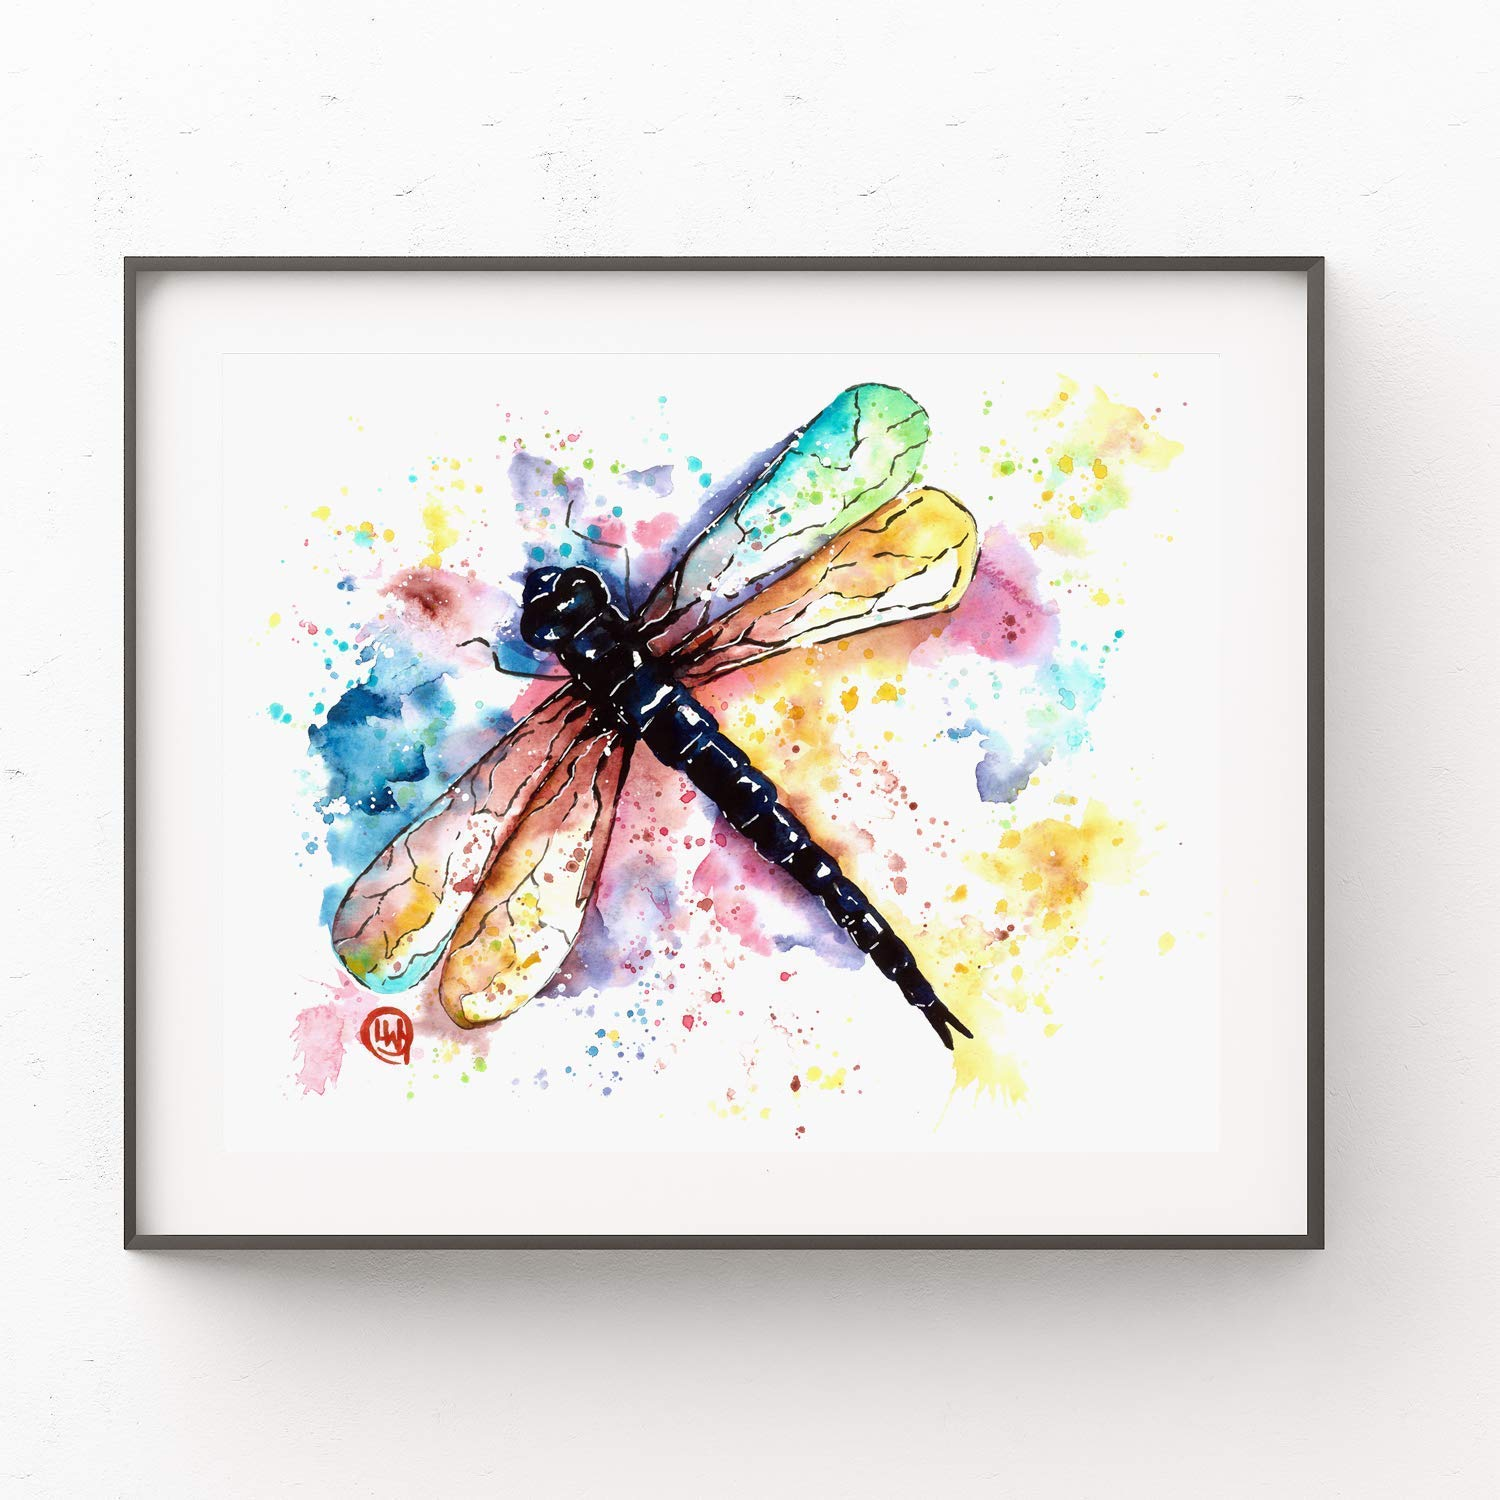 Dragonfly 8x10 FT Photo Backdrops,Bugs Leaves Branches Flowers Dandelions Abstract Art Print Background for Baby Shower Birthday Wedding Bridal Shower Party Decoration Photo Studio